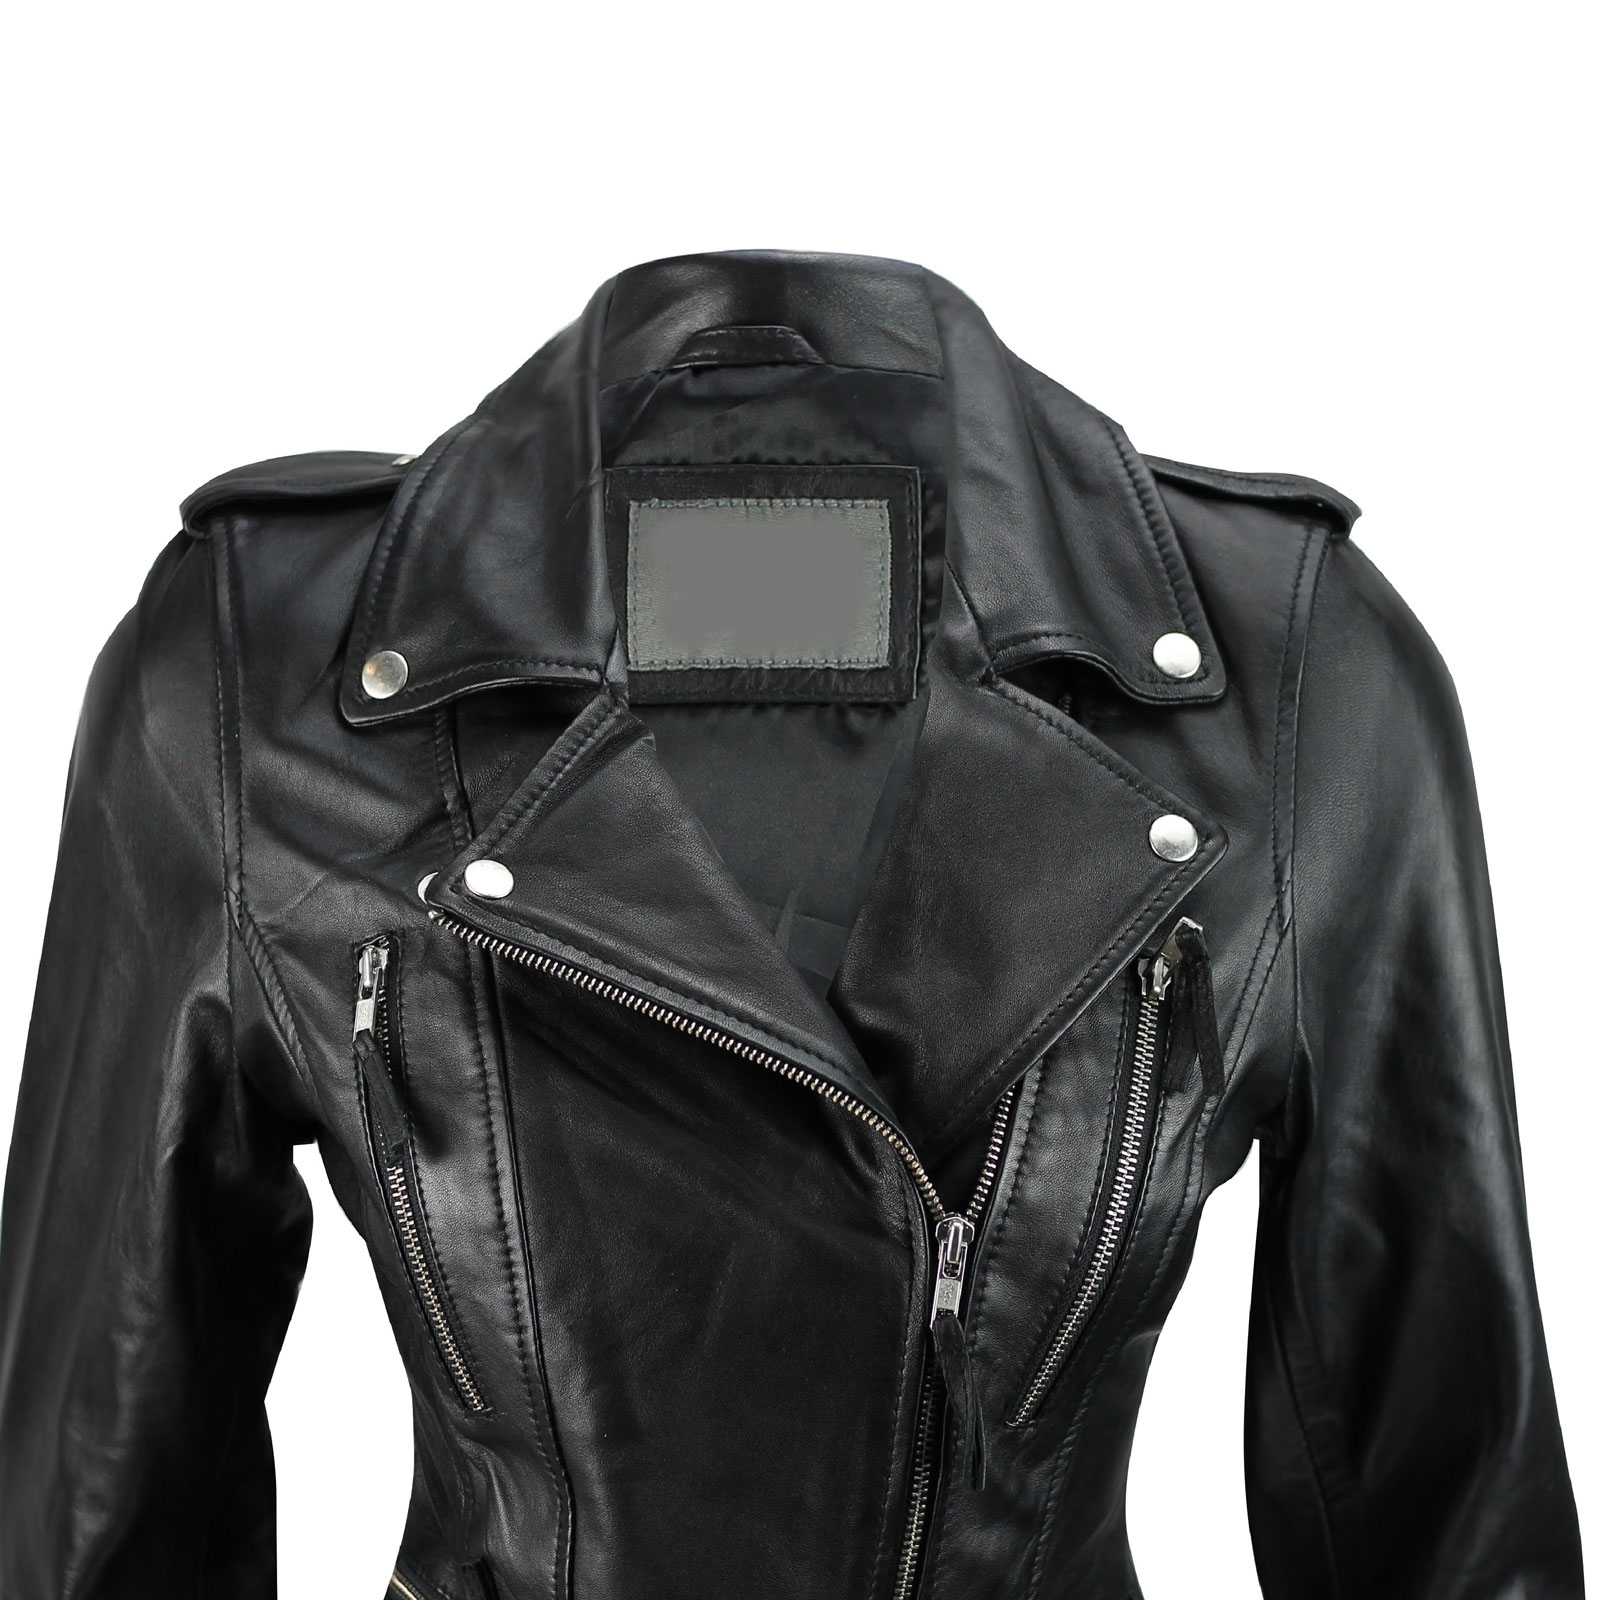 Leather Motorcycle Jackets for sale